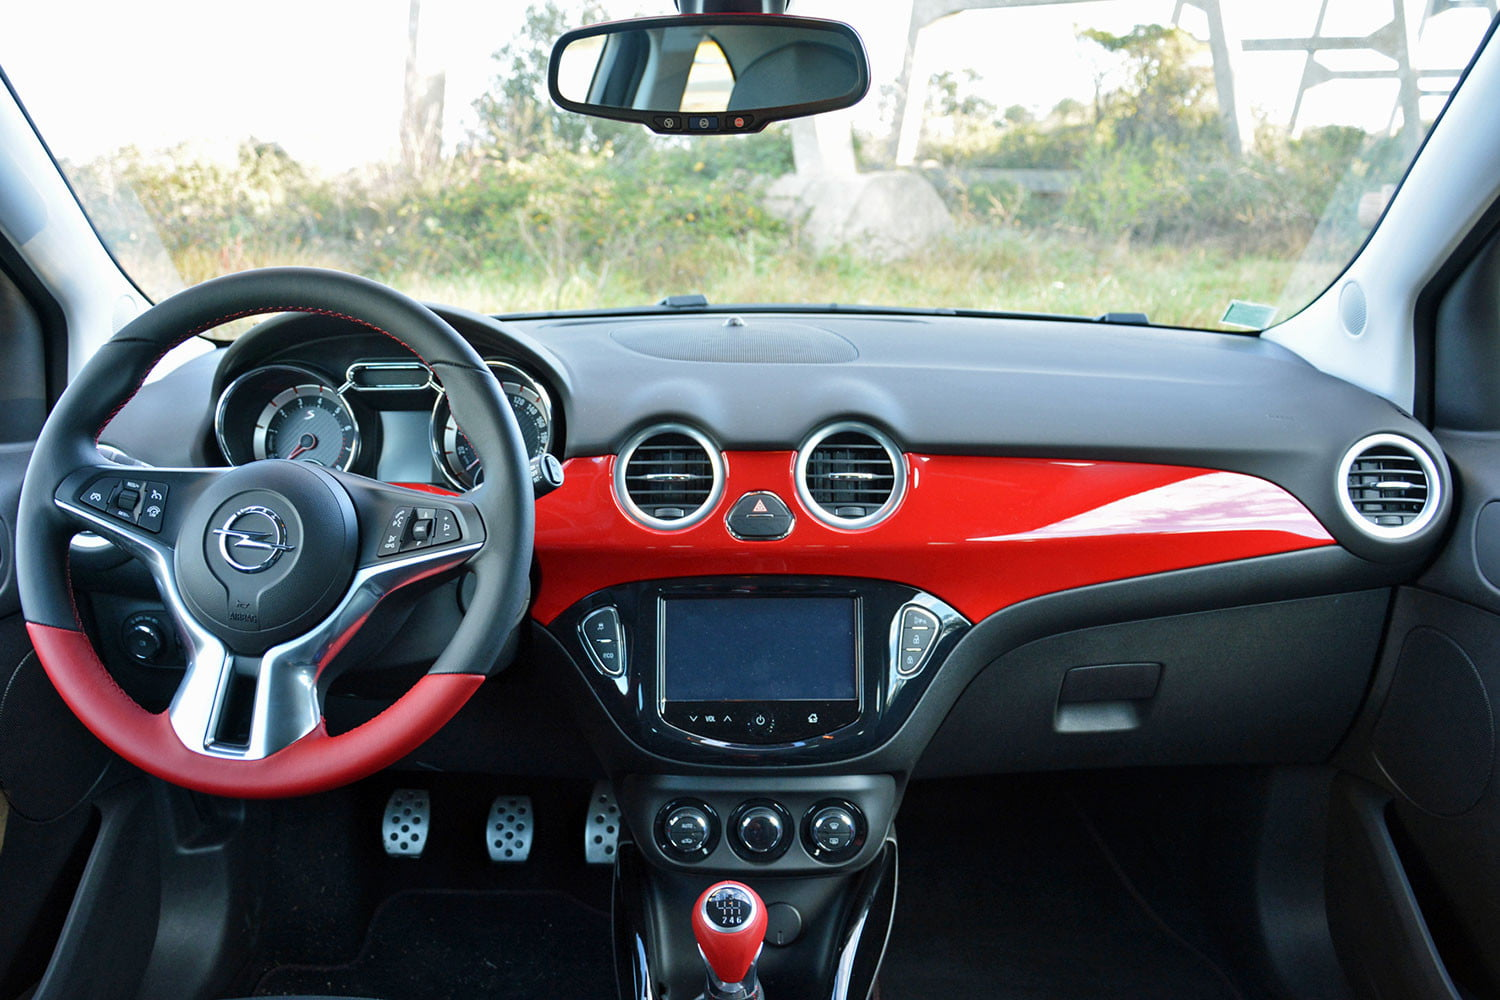 2016 opel adam s review pictures specs digital trends for Opel adam s interieur